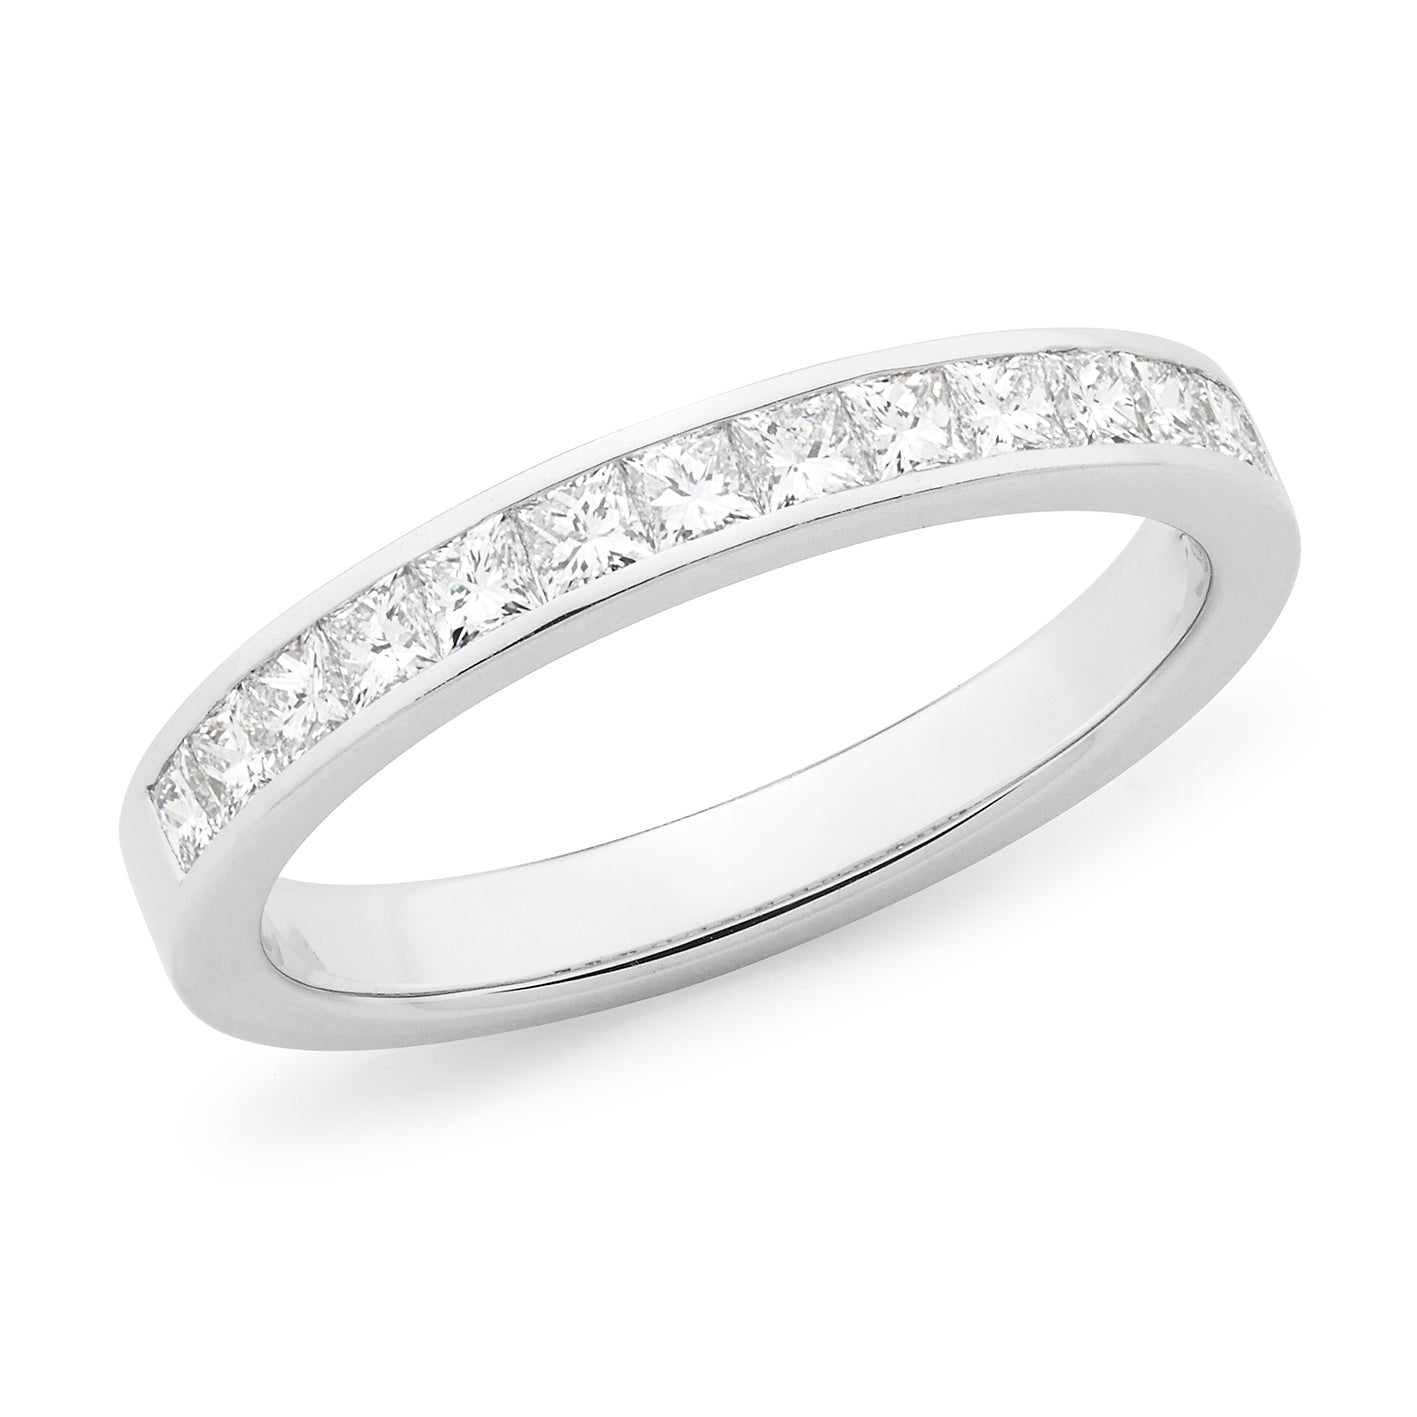 Prinsess Cut Diamond Channel Set Straight Wedding Ring in Yellow Rose and White Gold